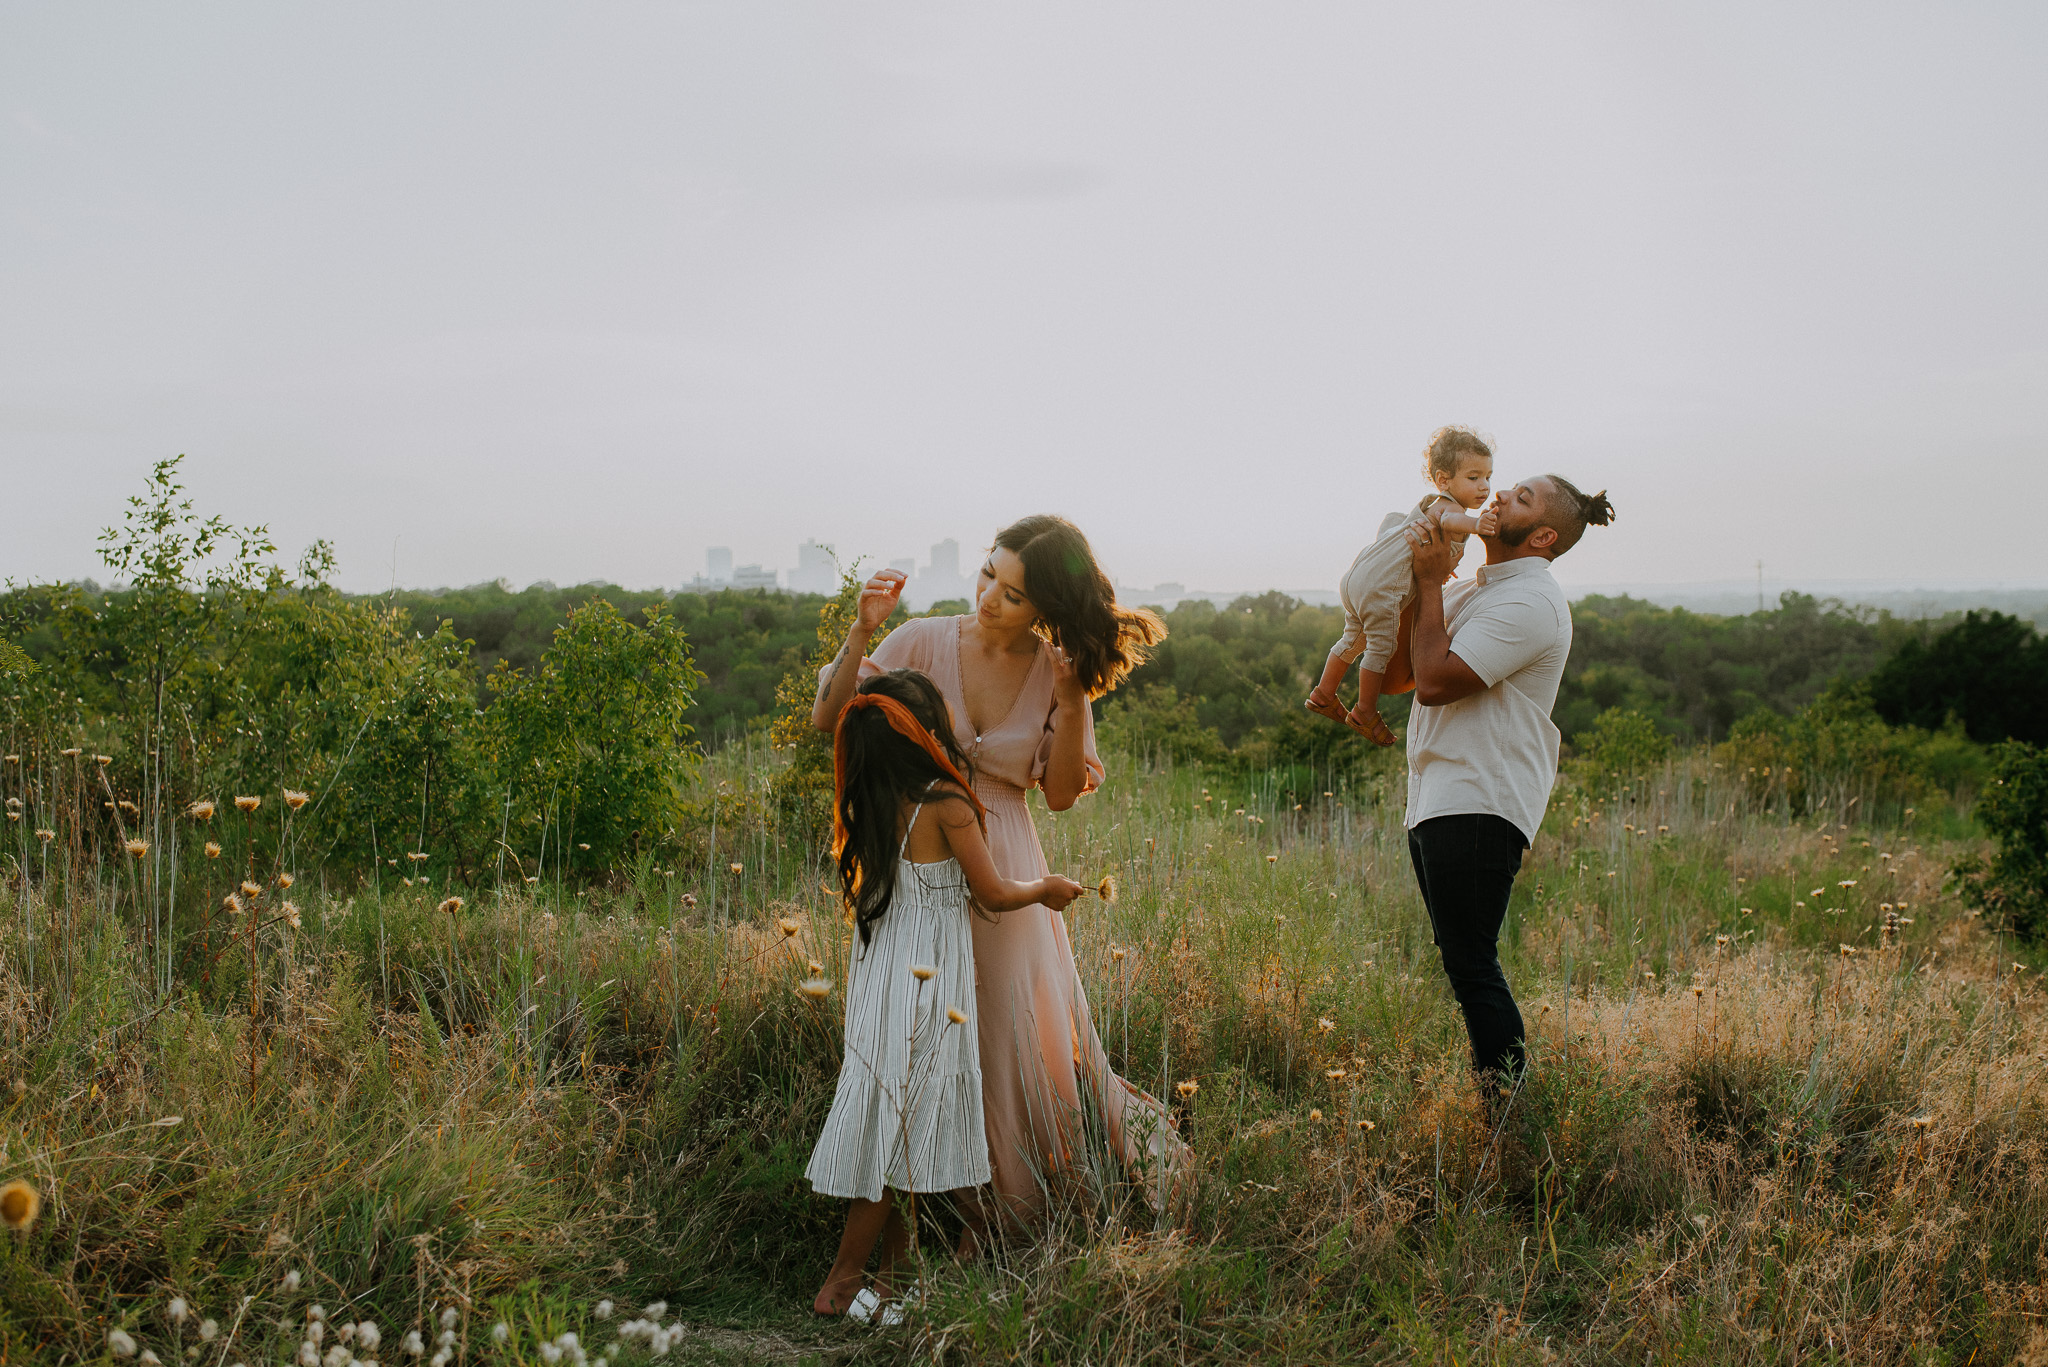 jessi-marie-photography-dallas-fort-worth-family-photographer-image--16.jpg